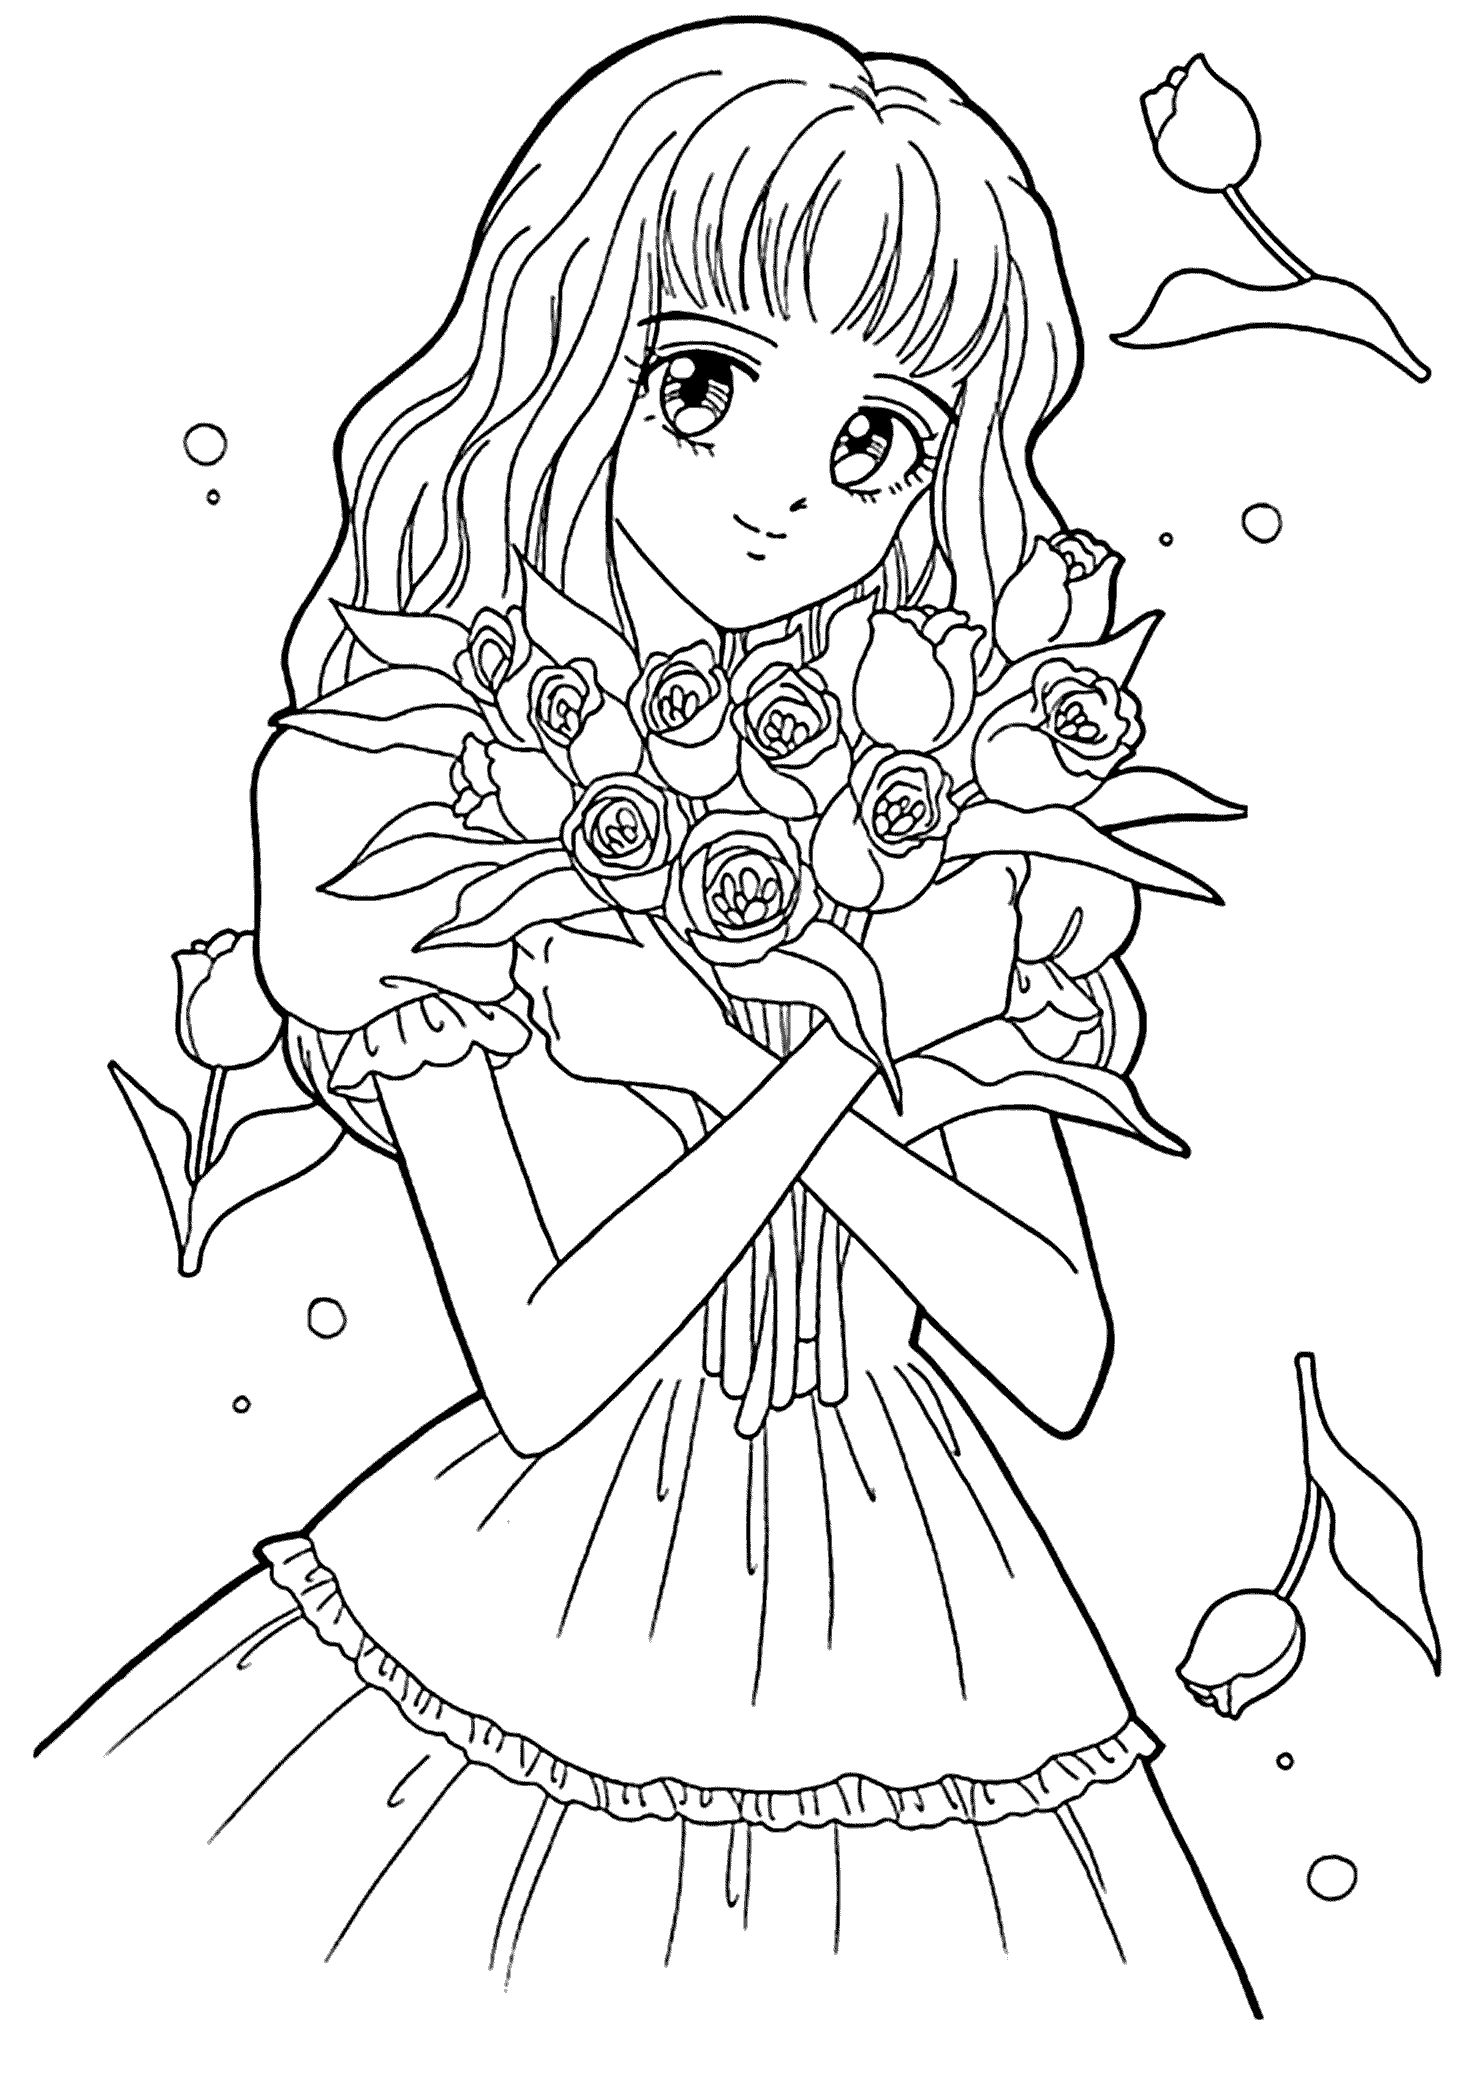 Coloring Pages Of Anime Boys Collection Coloring Pages For Teenagers Disney Princess Coloring Pages Princess Coloring Pages